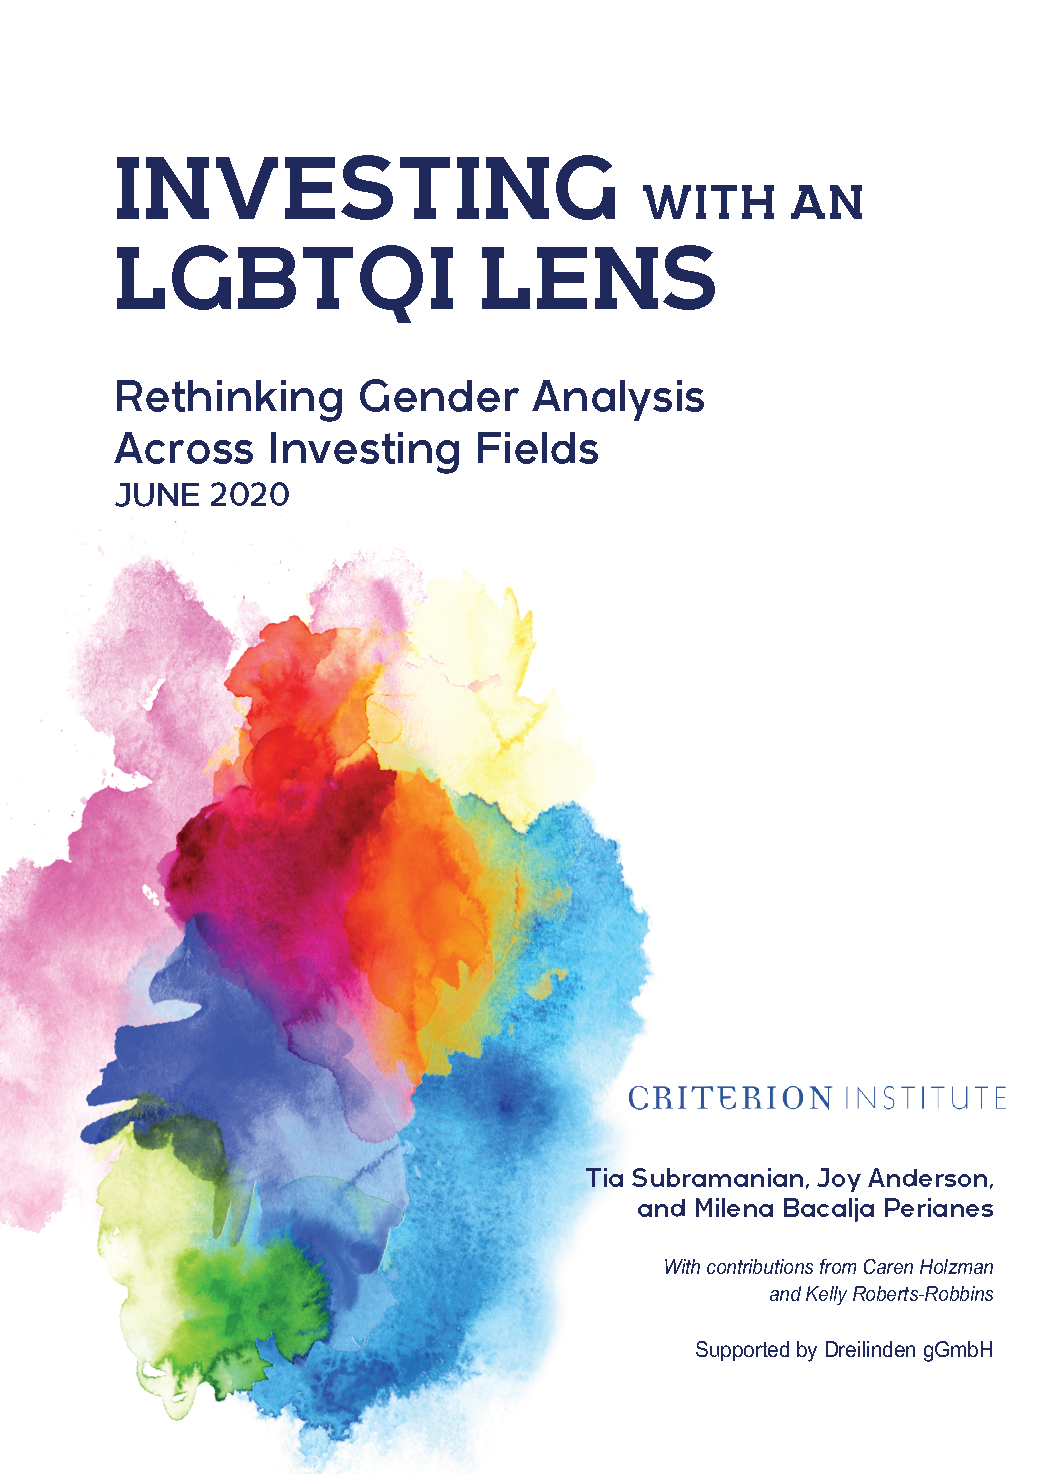 Investing with an LGBTQI lens  - Rethinking Gender Analysis Across Investing Fields